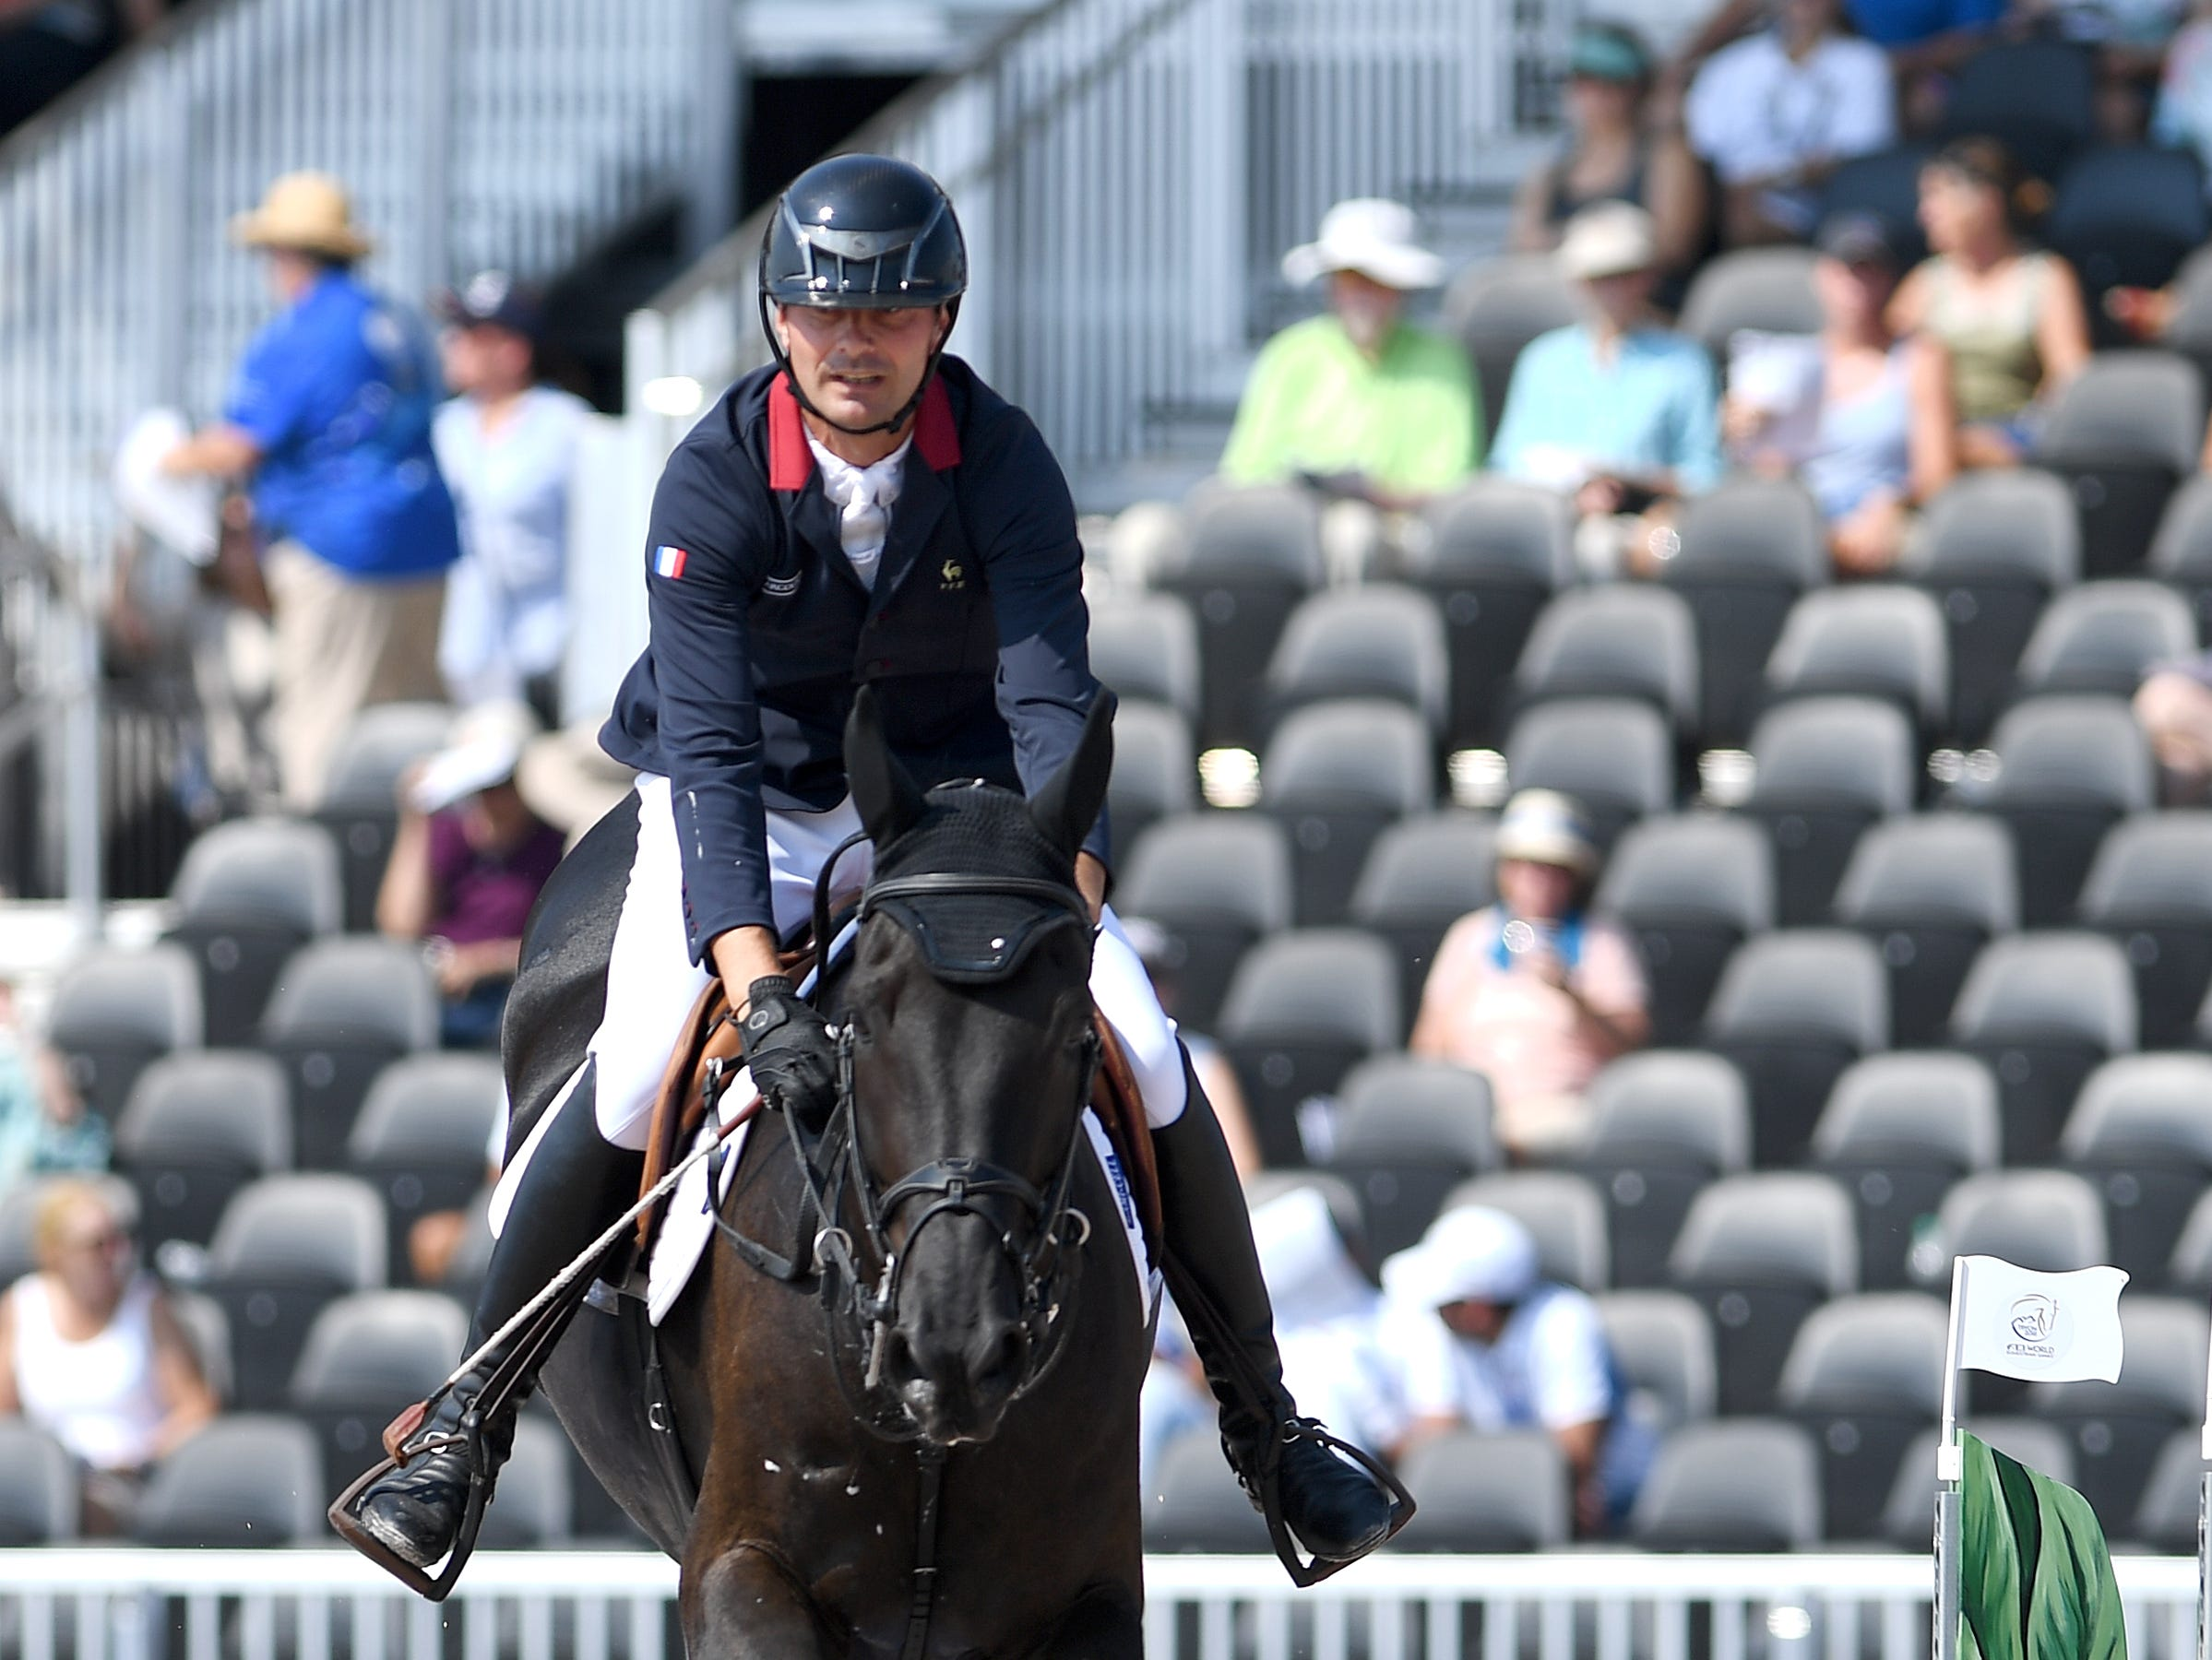 France's Nicolas Delmotte, on Ilex VP, competes in the team jumping competition of the FEI World Equestrian Games at the Tryon International Equestrian Center on Sept. 20, 2018.